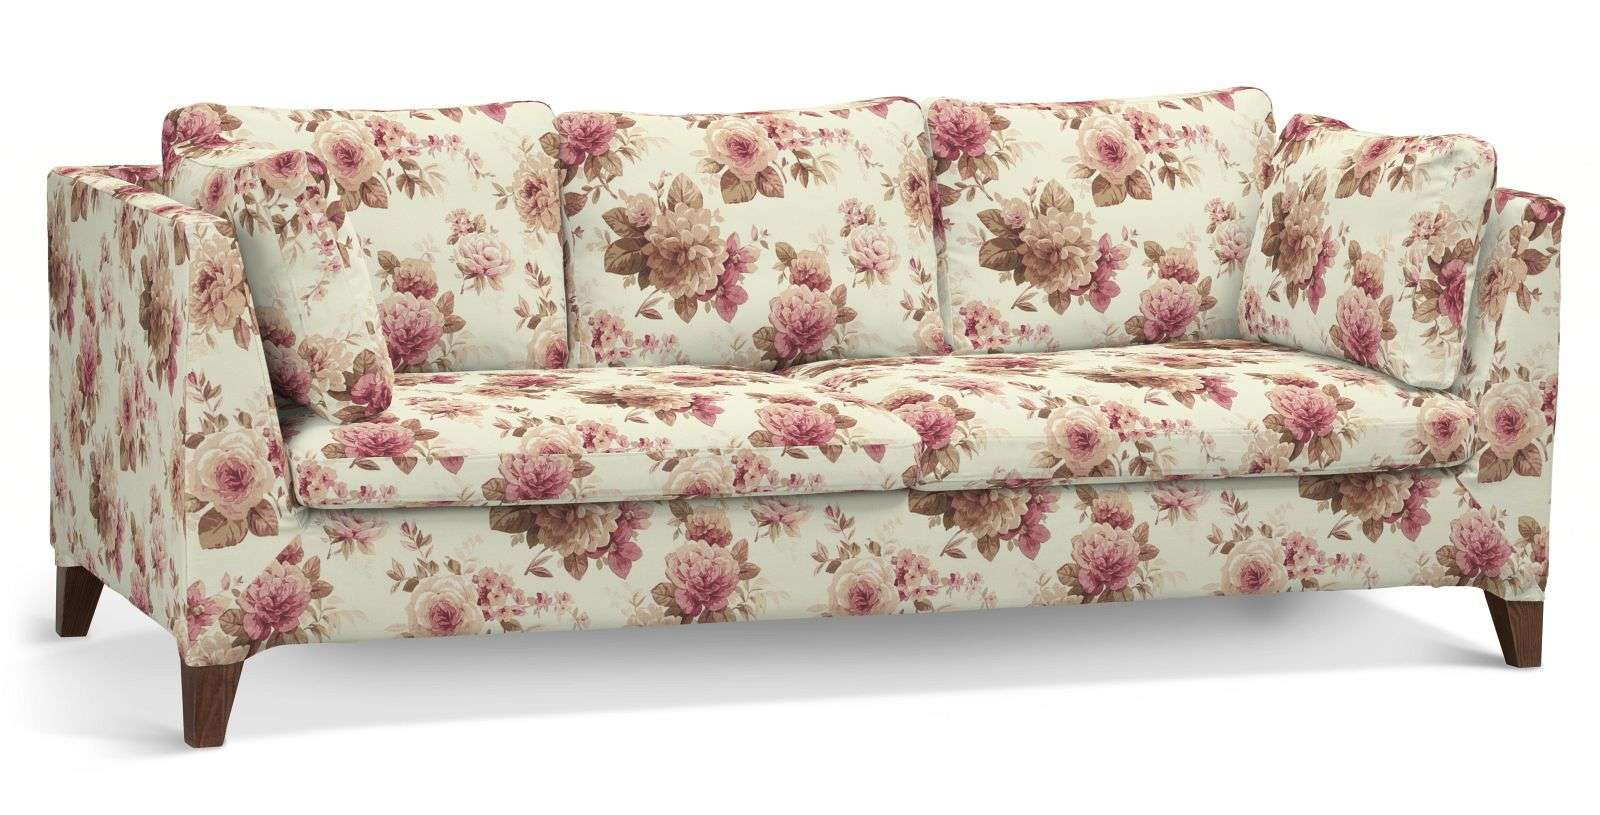 Stockholm 3-seater sofa cover Stockholm 3-seater sofa in collection Mirella, fabric: 141-06